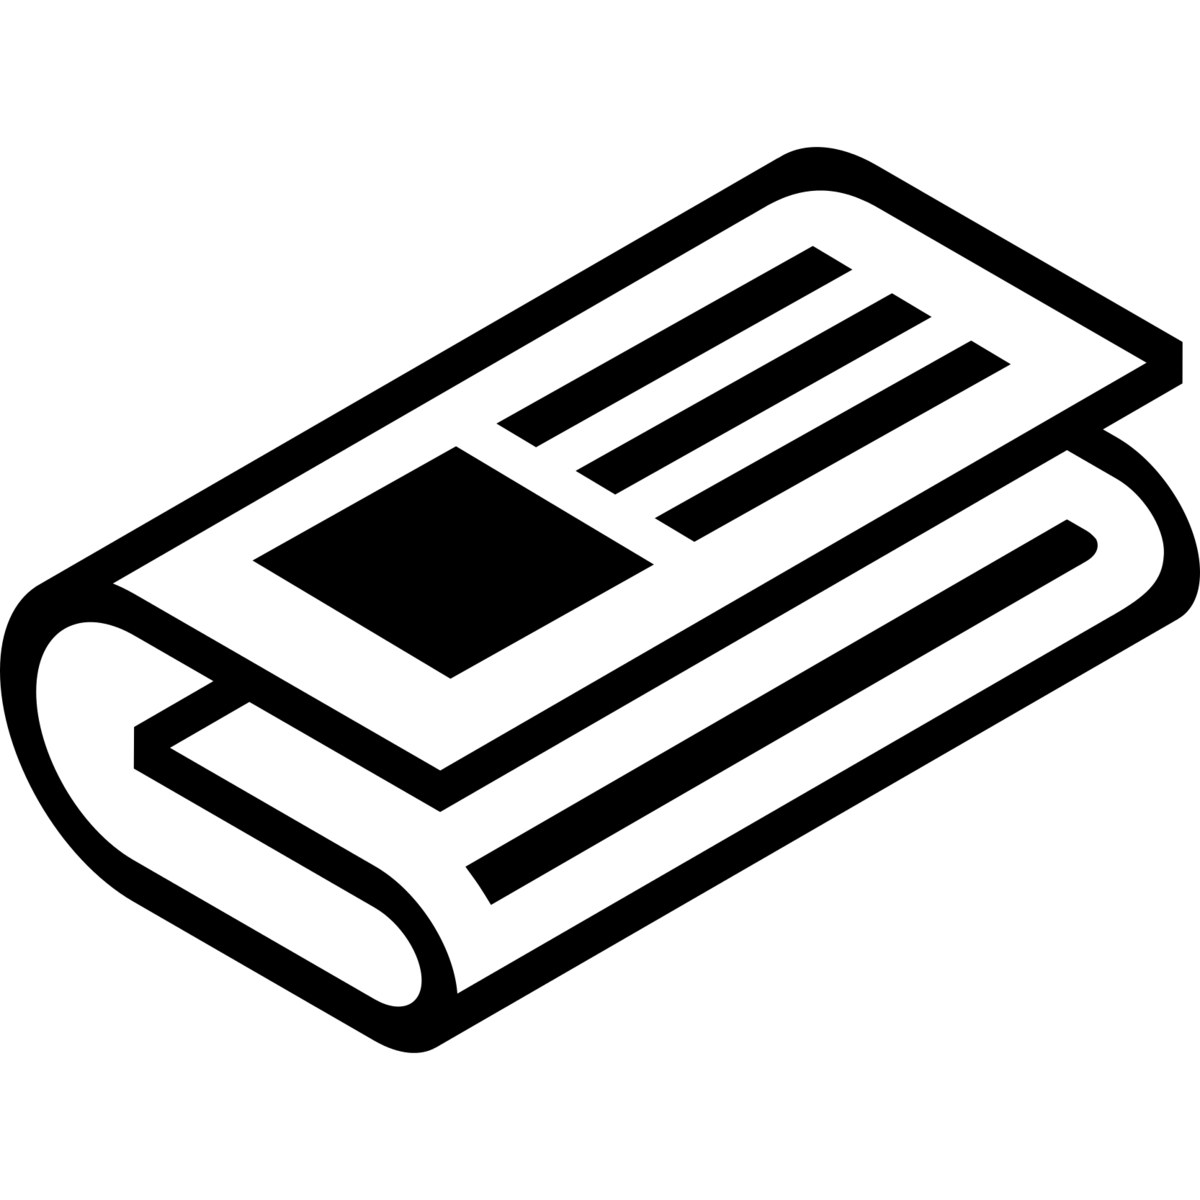 icon of a newspaper